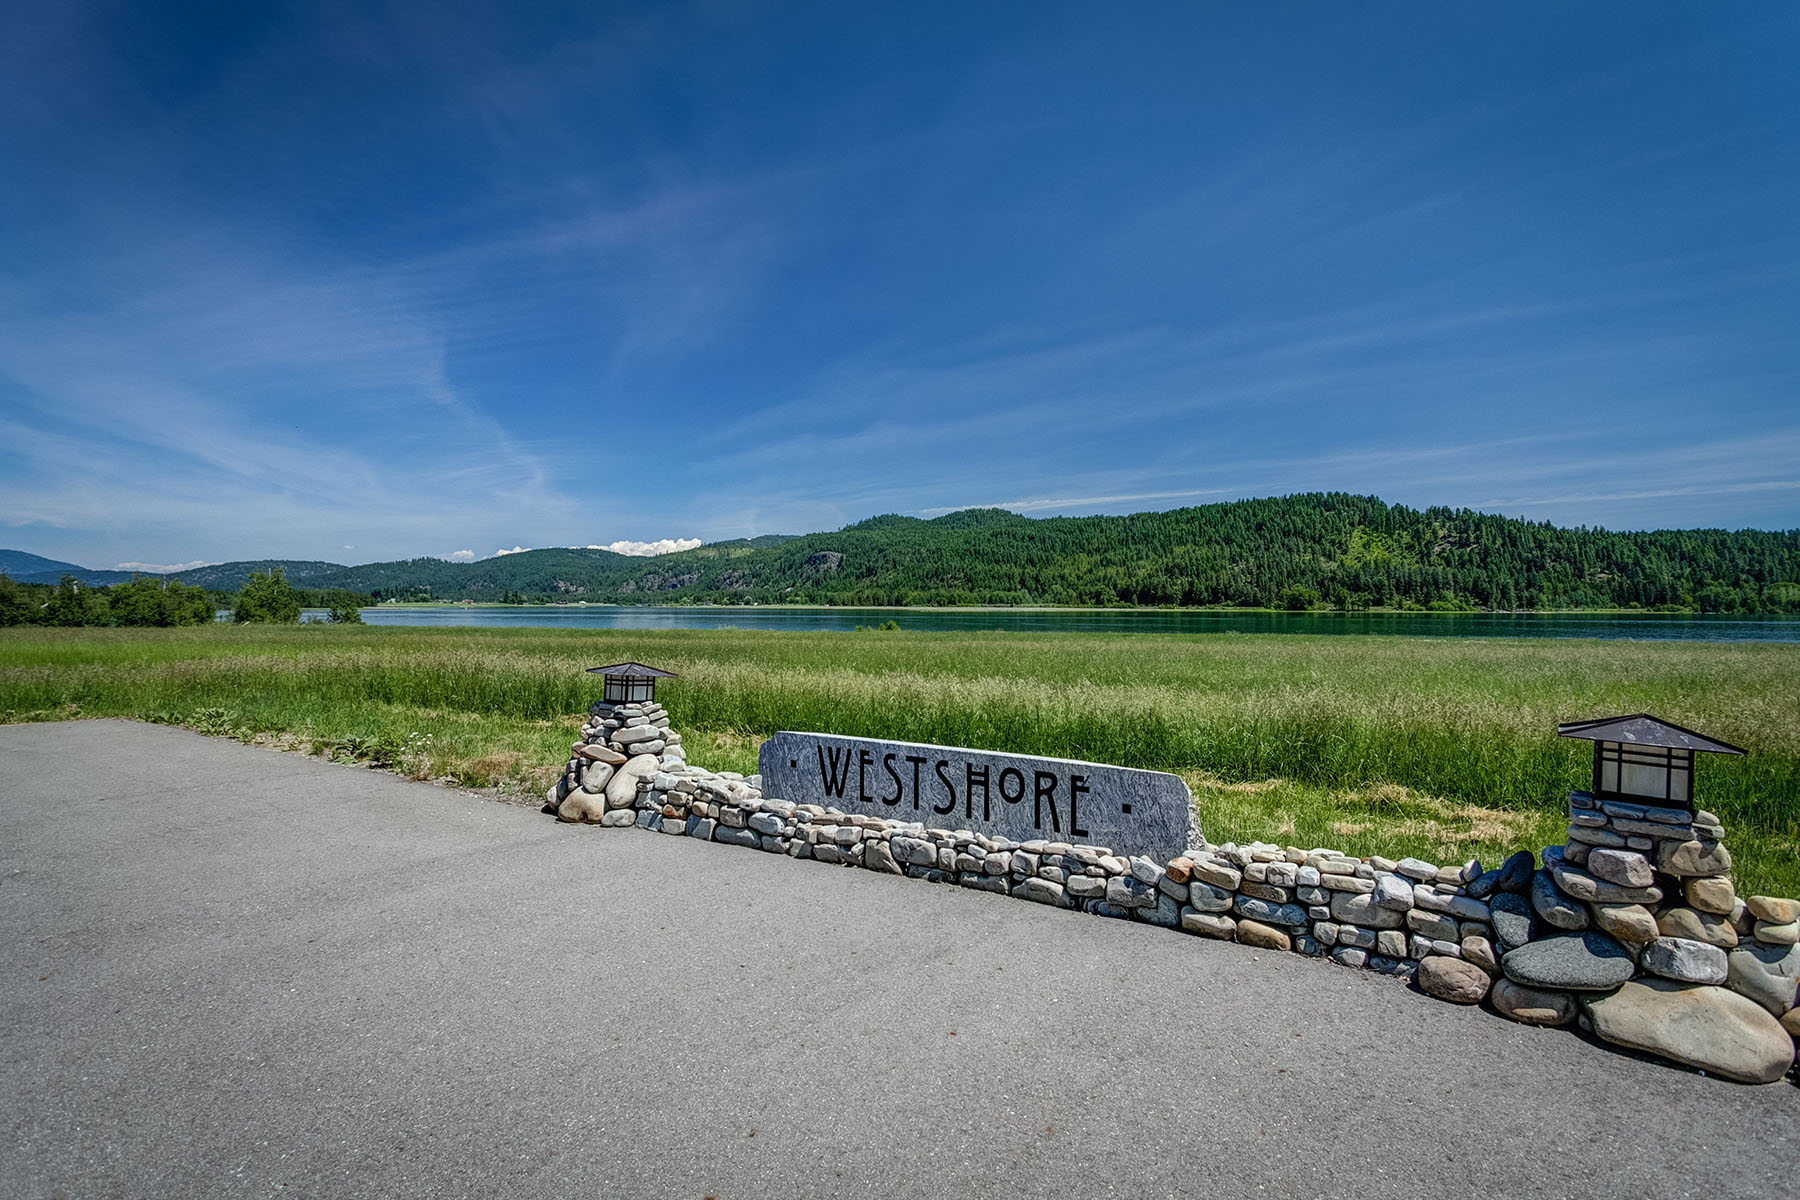 Land for Sale at Westshore Waterfront Building Sites Lot 8 Westshore Way, Laclede, Idaho, 83841 United States